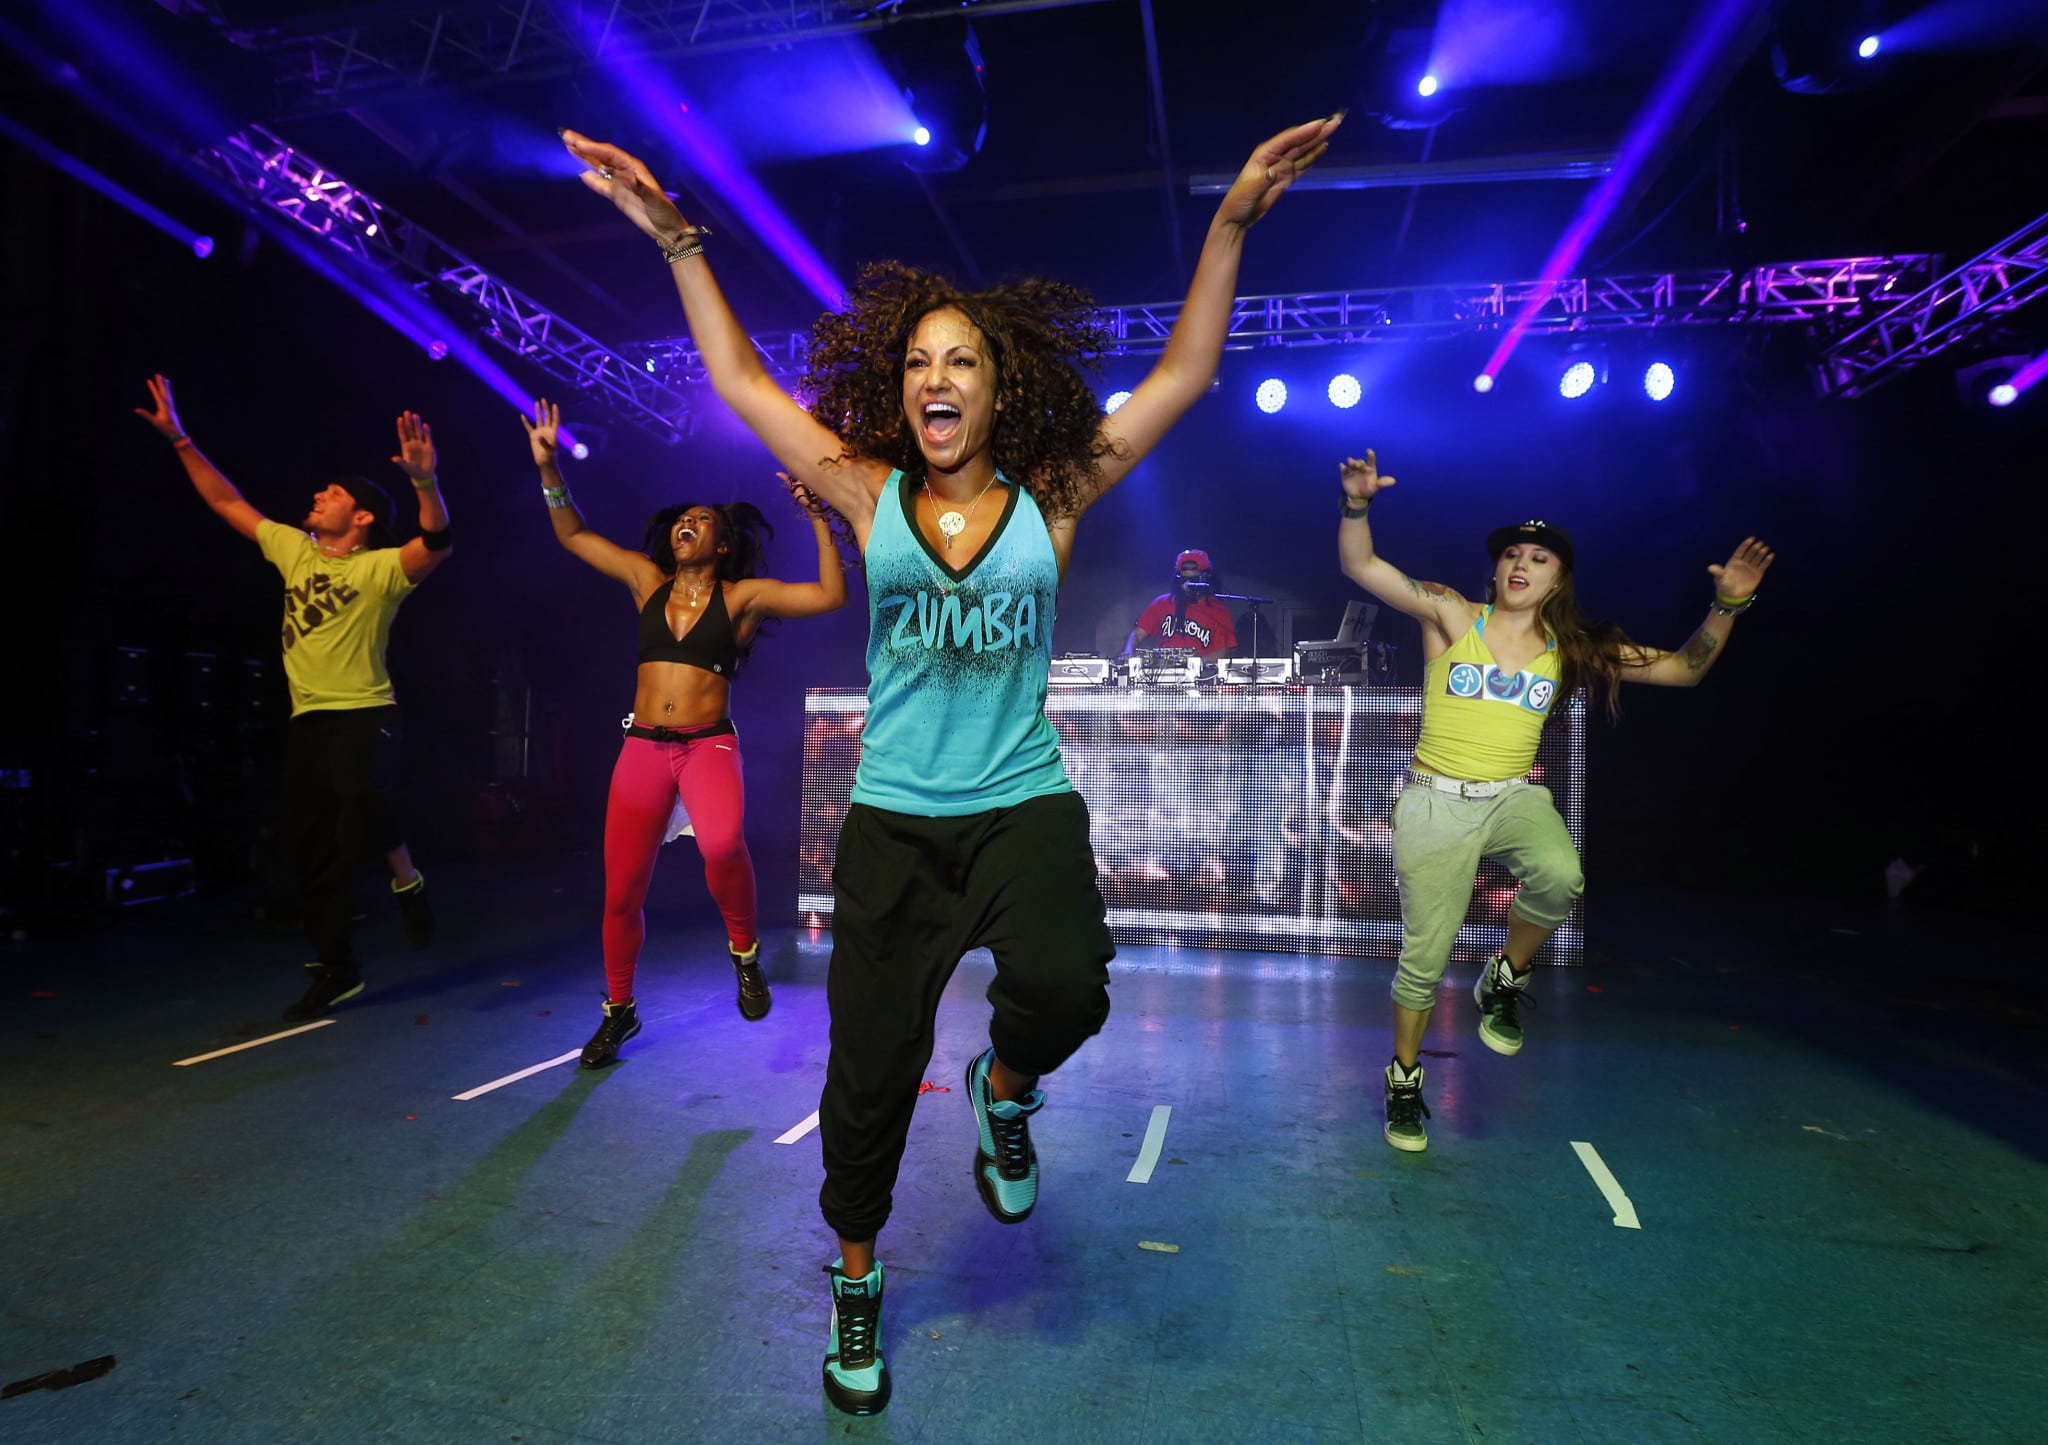 Celebrity Zumba Instructor Gina Grant, alongside Lil Jon on the turntables, leads a Zumba class at Amazura nightclub in Queens, N.Y. (one of the many stops in the Zumba Nightclub Series).